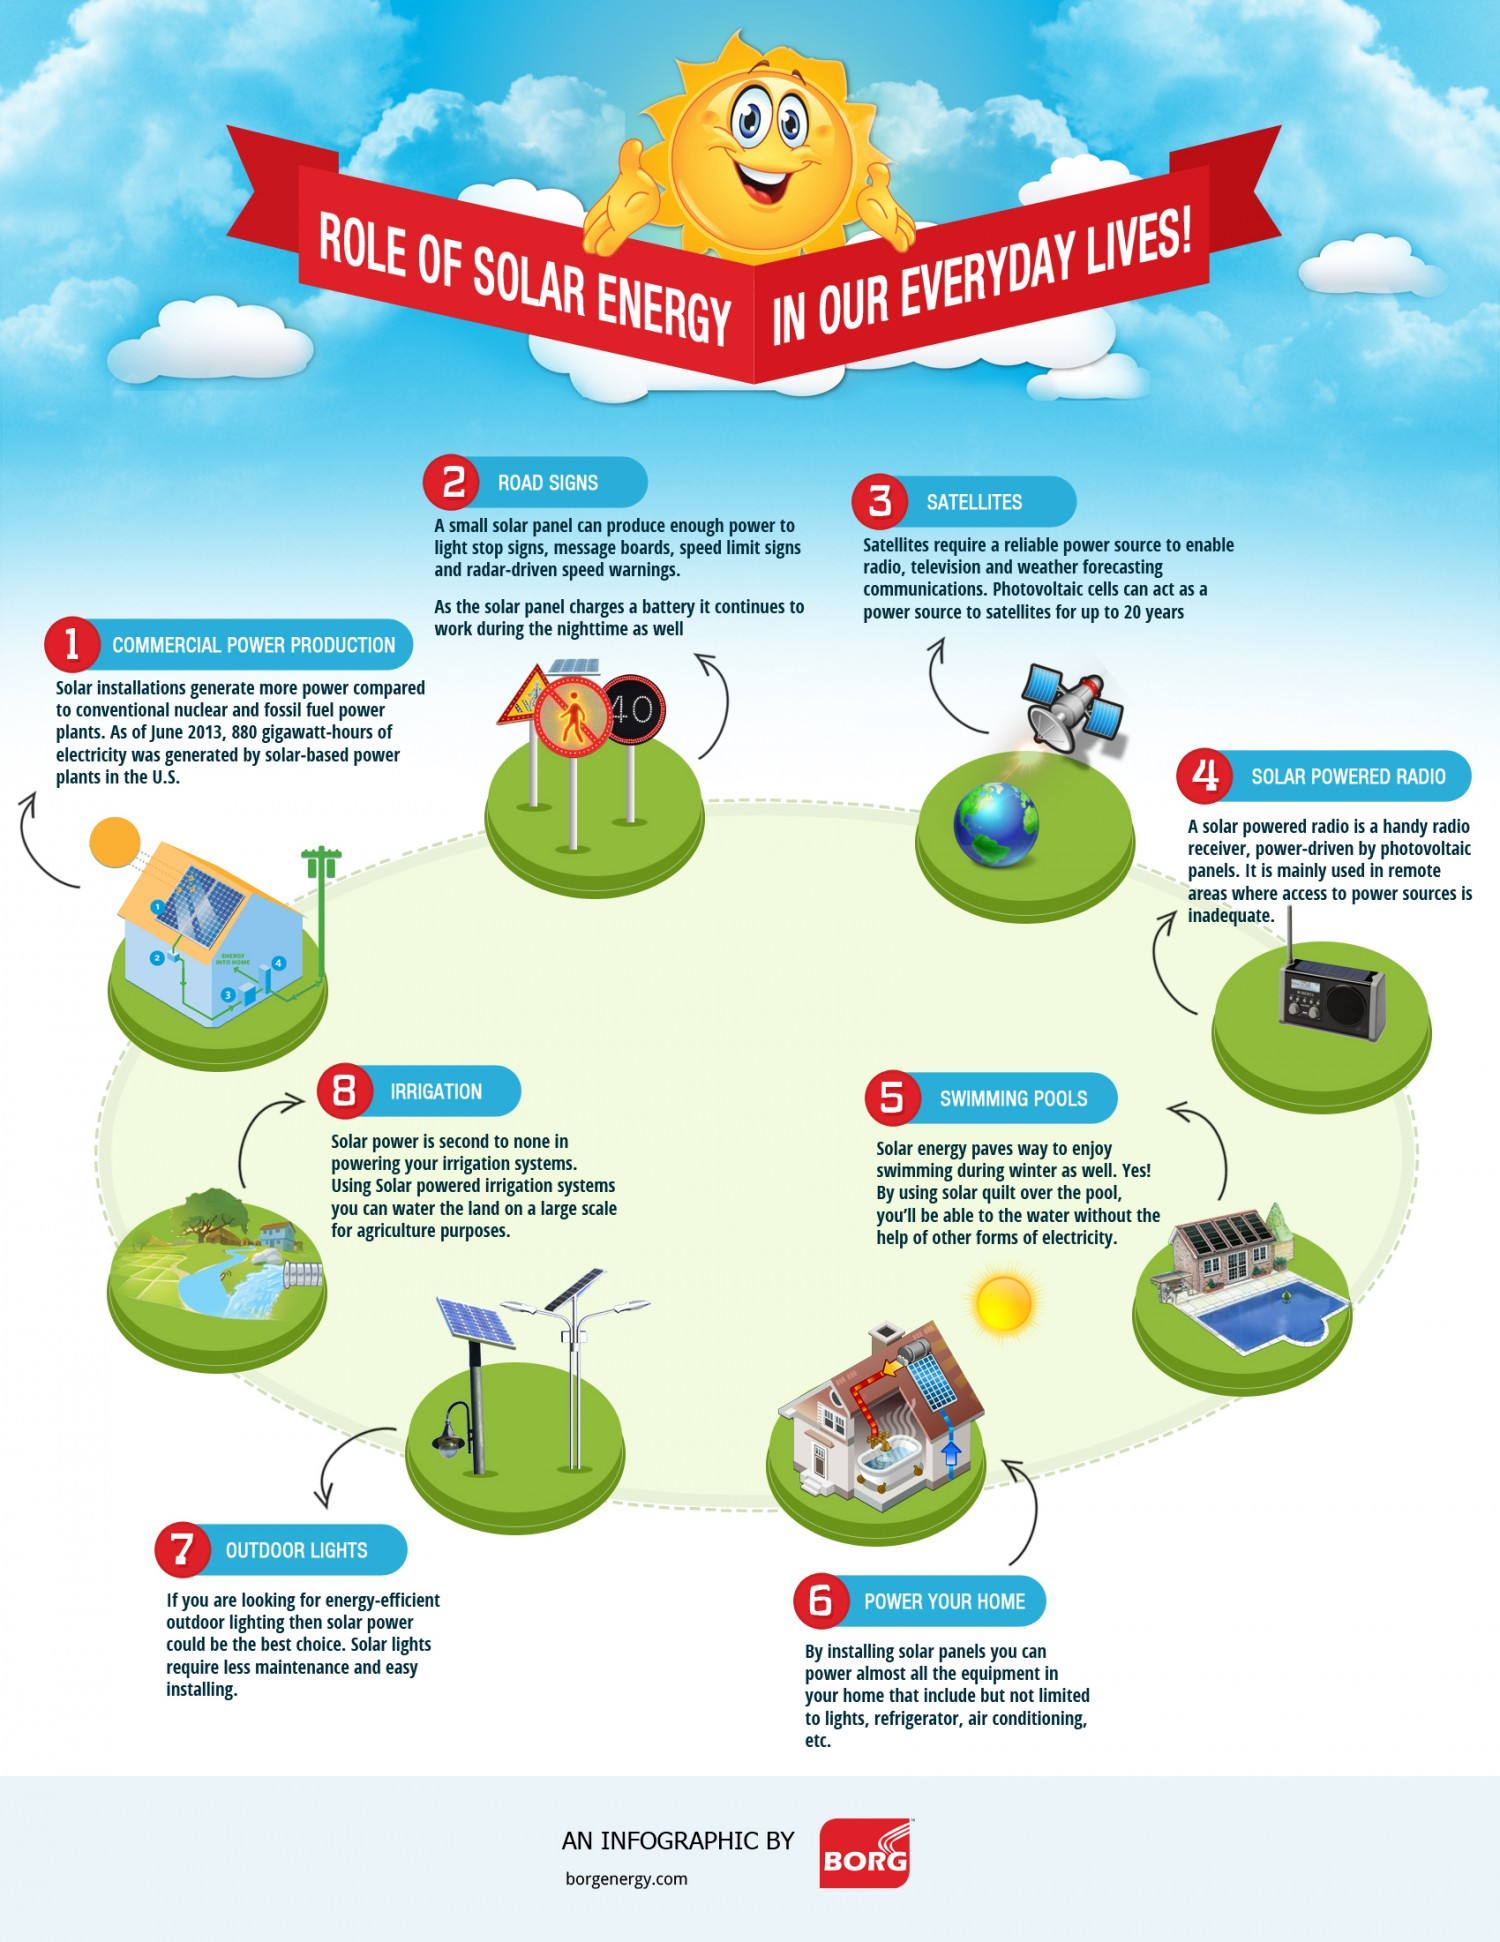 an-infographic-on-the-influence-of-solar-energy-in-our-lives_537c8a6b87663_w1500